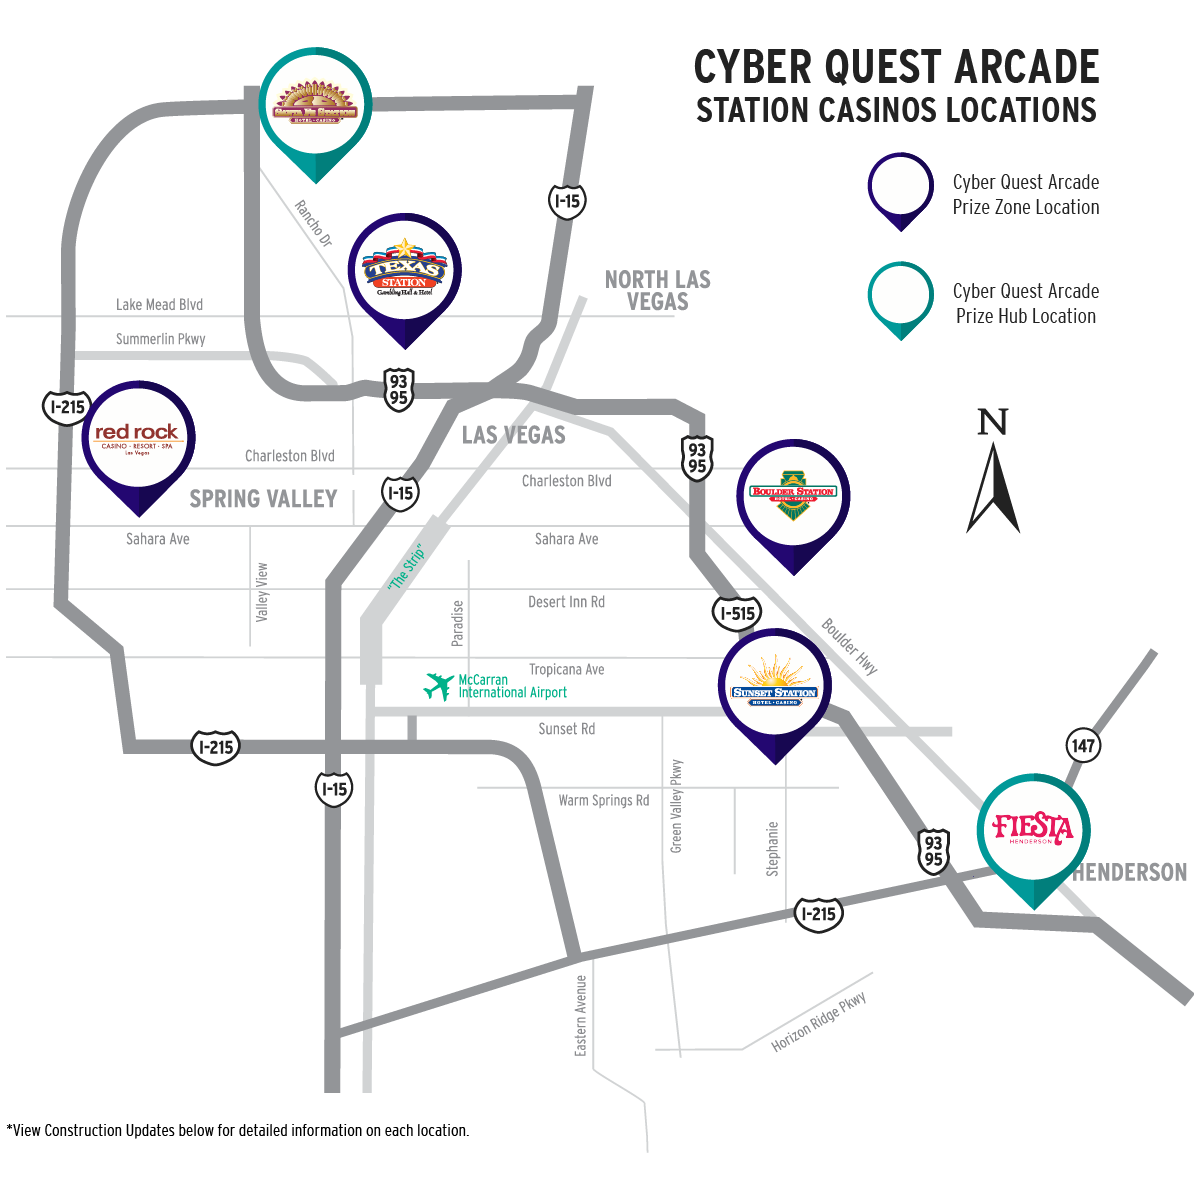 Cyber Quest Arcade Station Casinos Locations